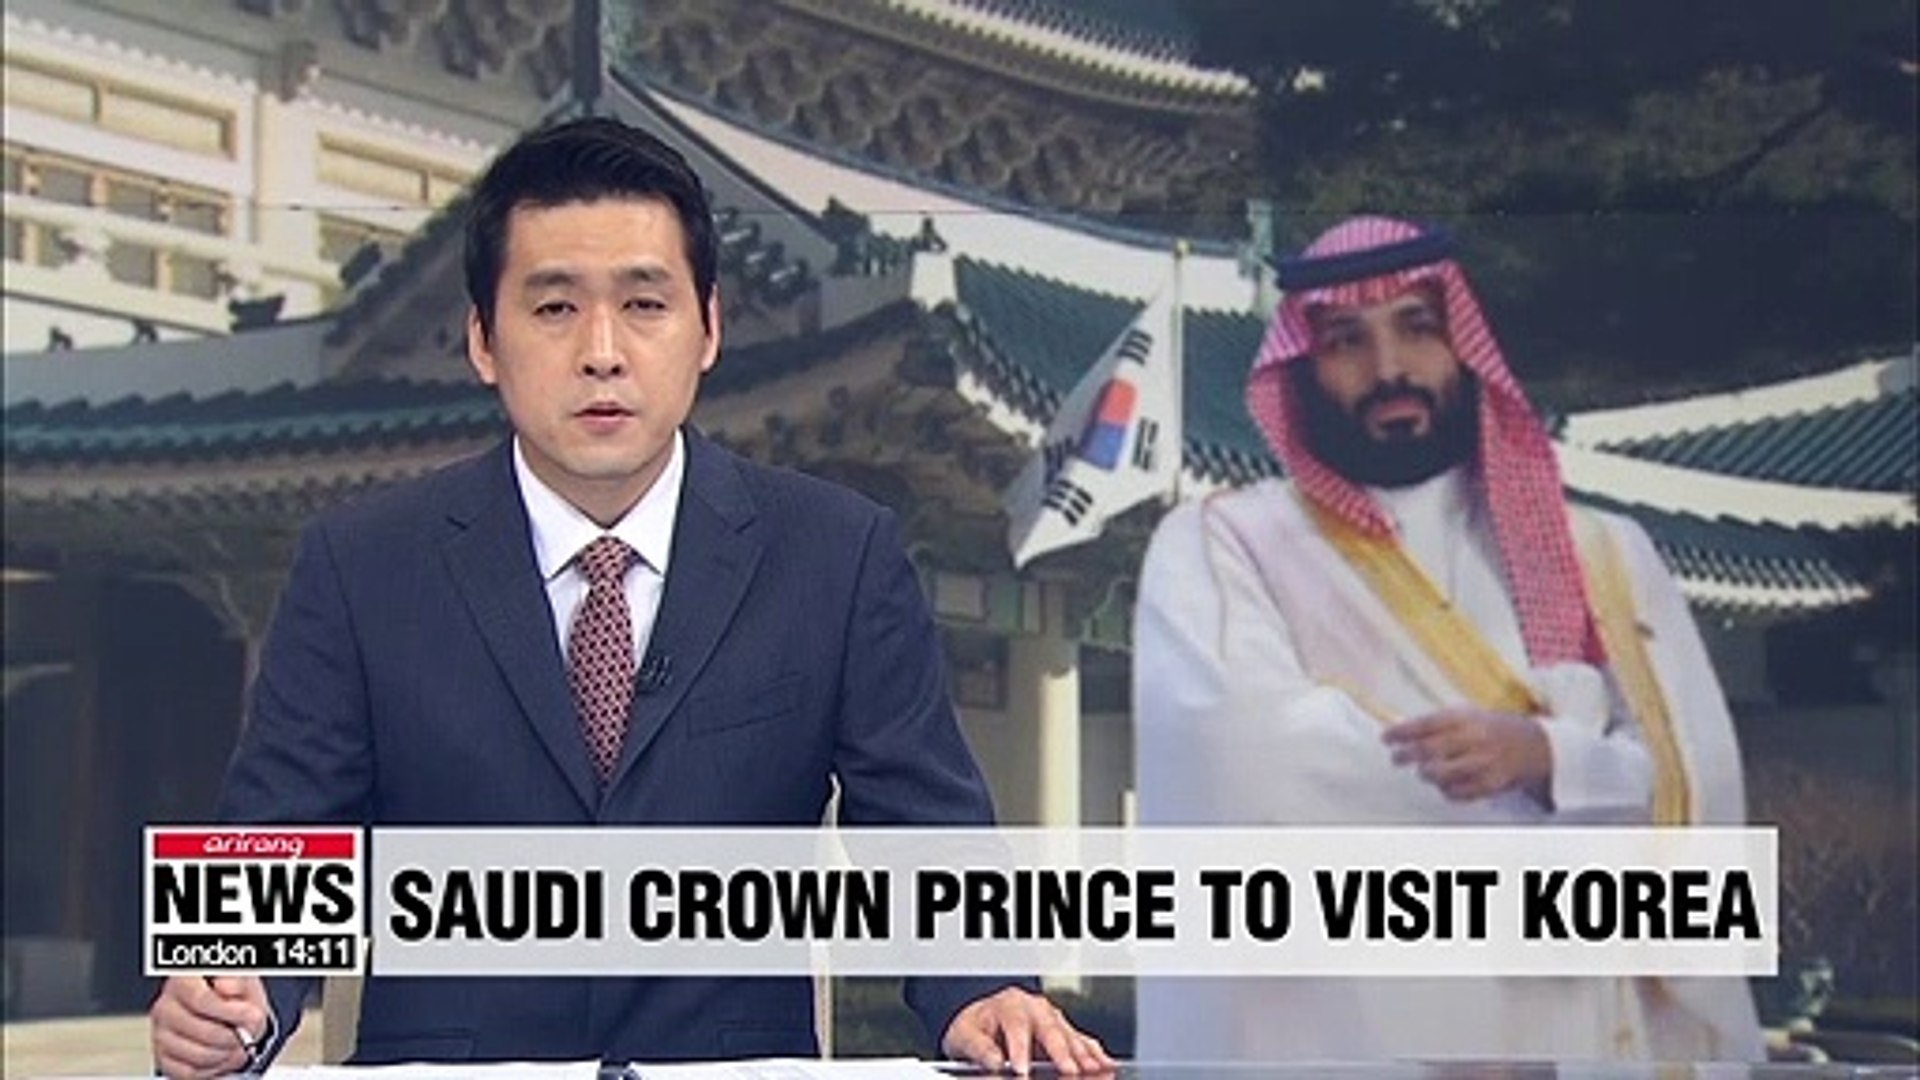 Crown Prince of Saudi Arabia to visit Seoul for two-day state visit next week